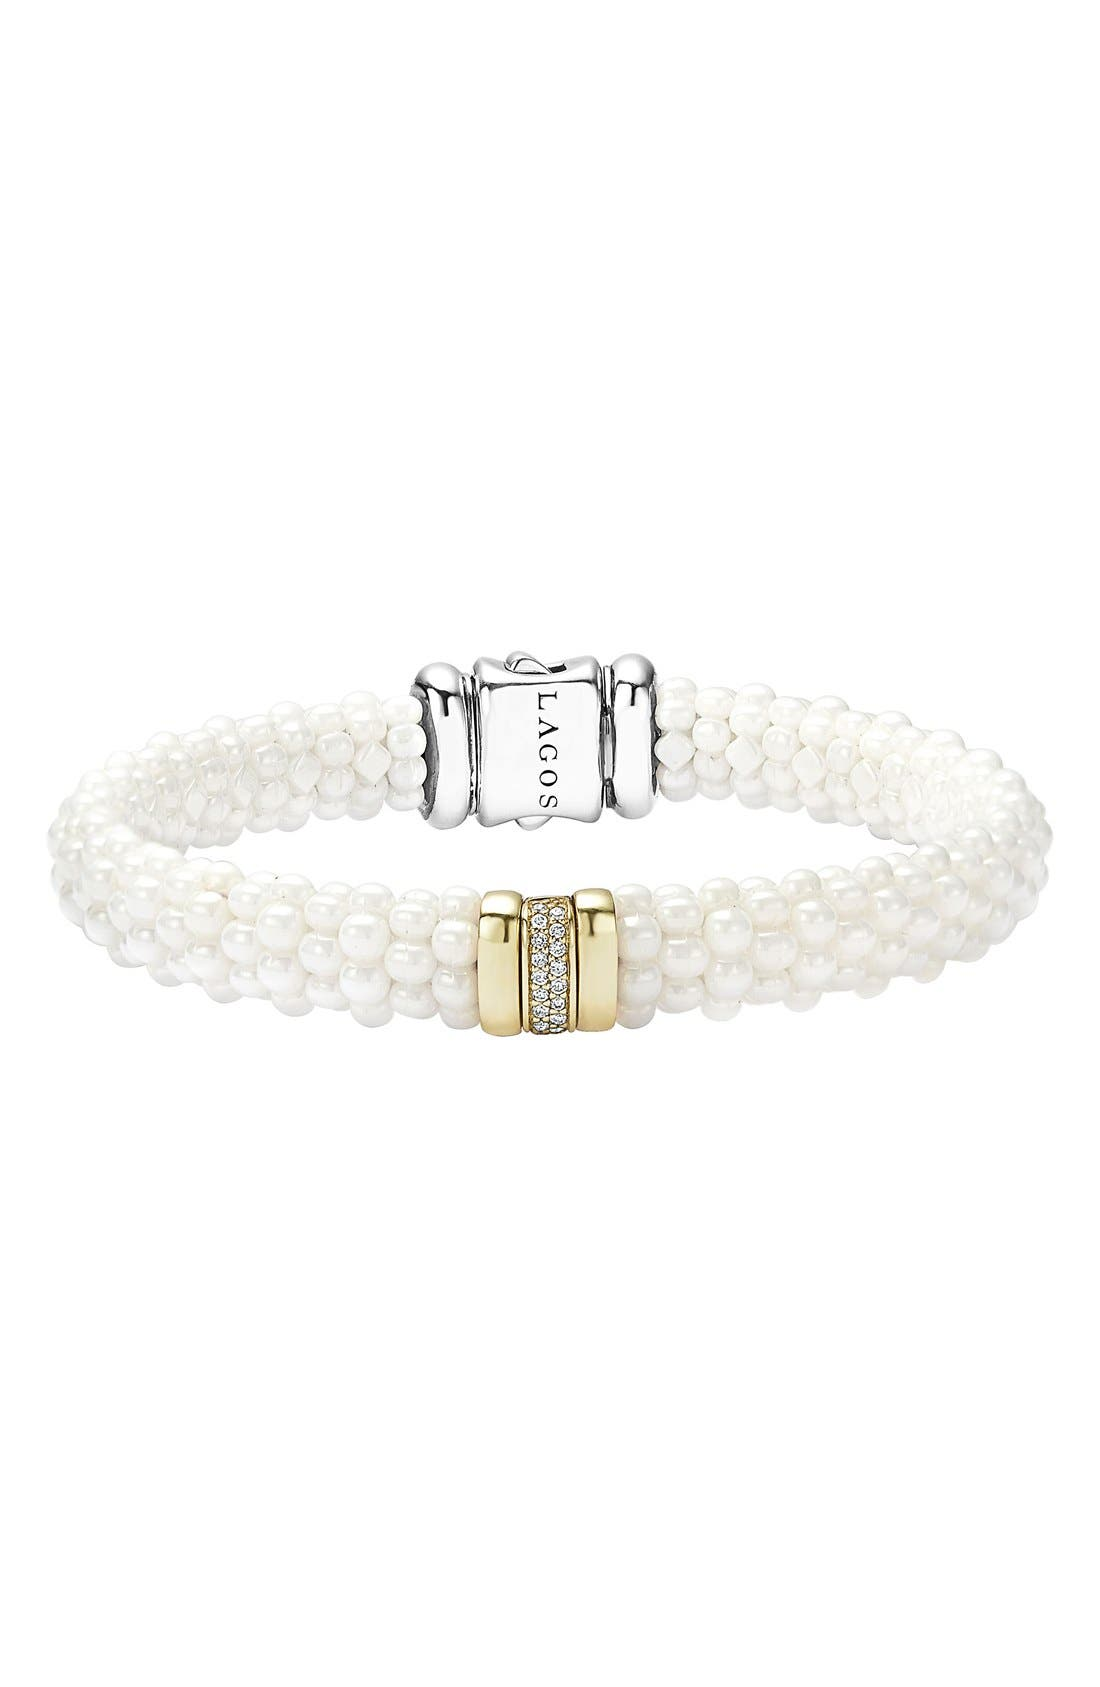 'White Caviar' Diamond Rope Bracelet,                         Main,                         color, WHITE CAVIAR/ YELLOW GOLD